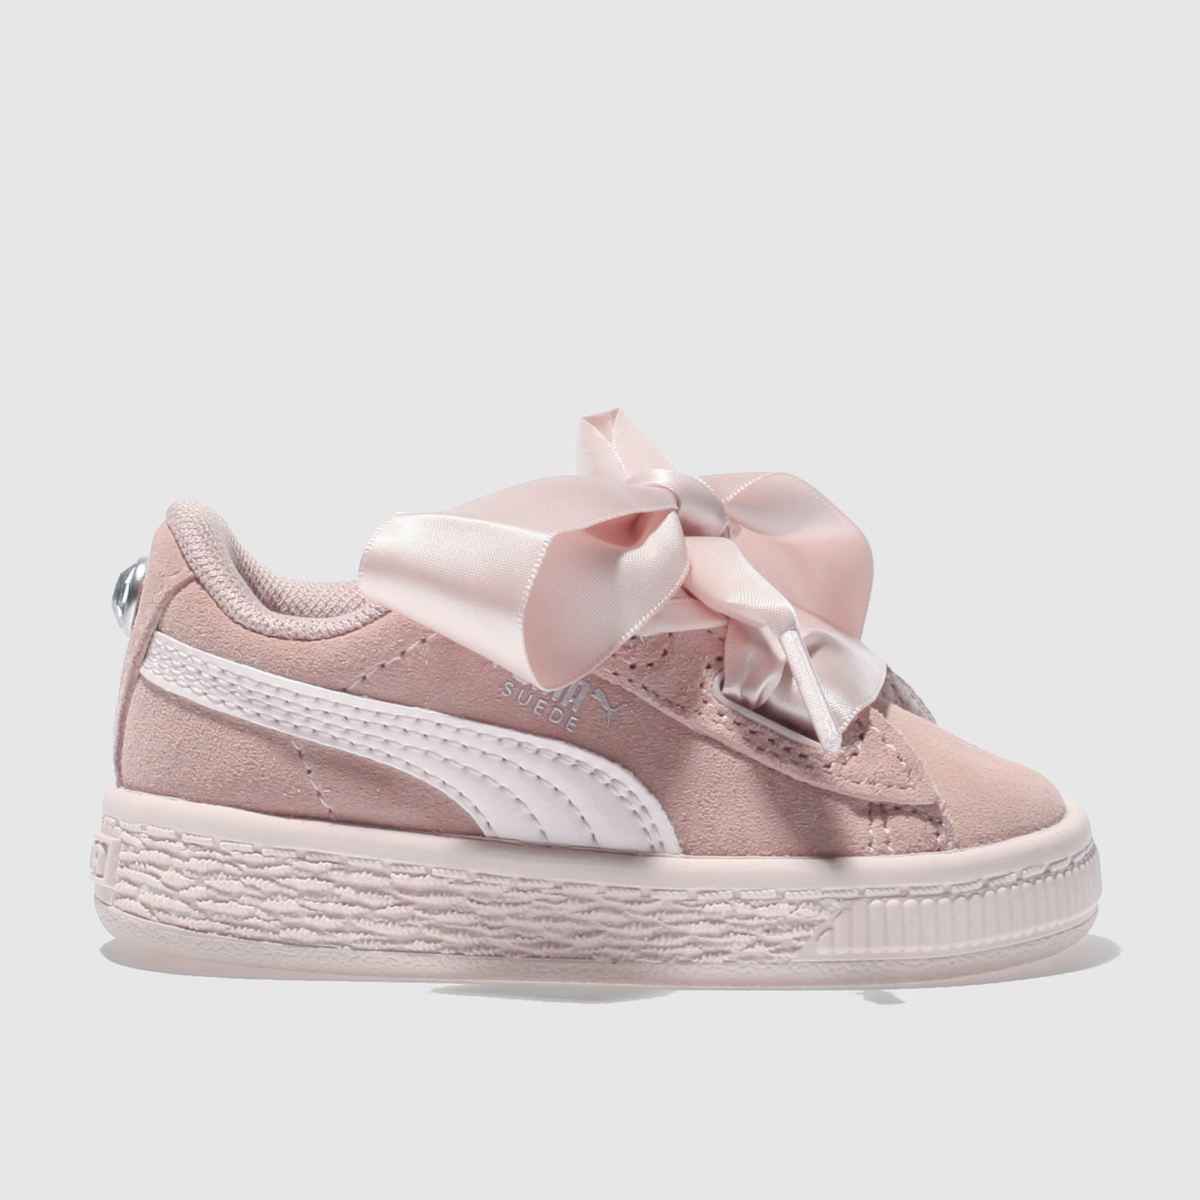 Puma Pink Suede Heart Jewel Tdlr Girls Toddler Trainers